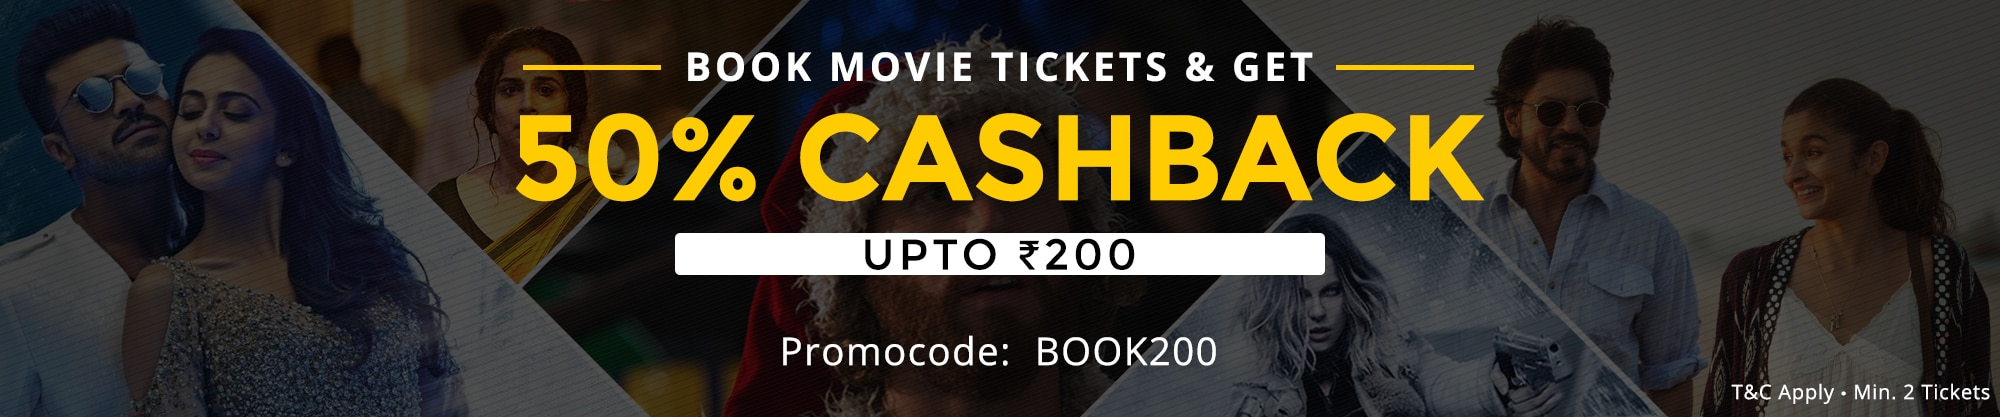 Get 50% cashback on movie tickets (upto max Rs 200) – Shop Online at Paytm.com